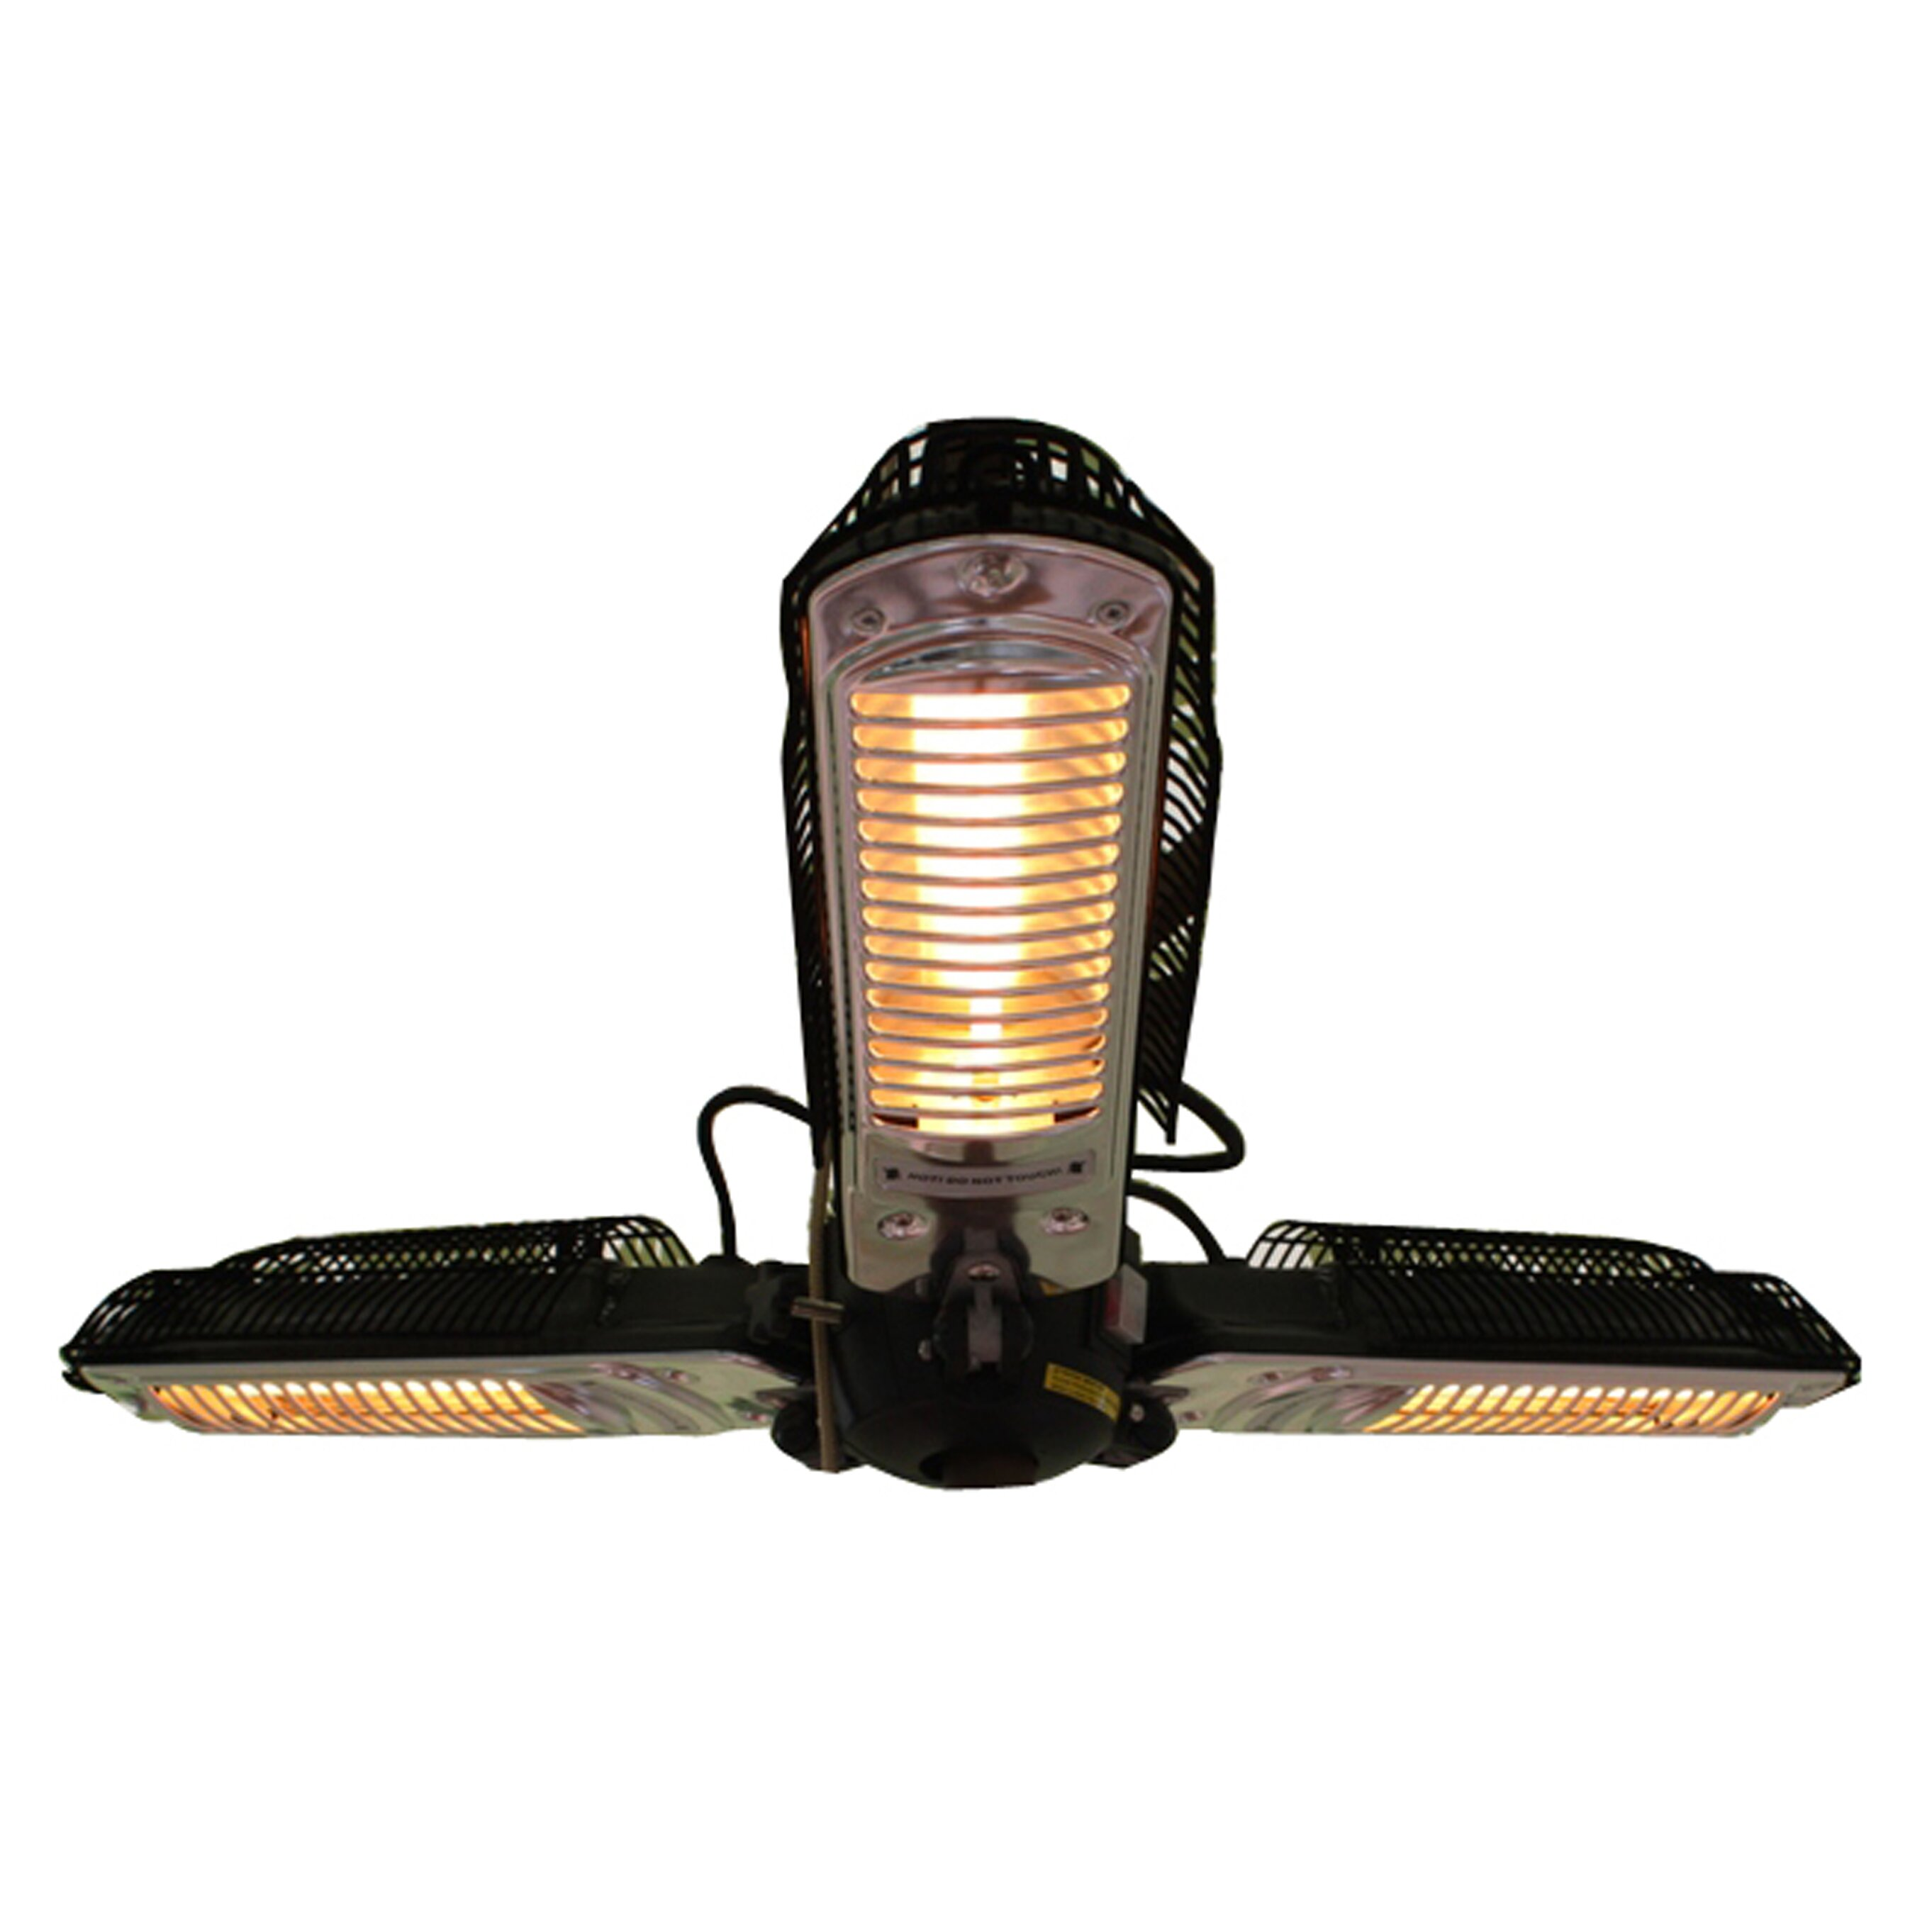 Fire Sense Mocha Finish Square Flame Heater Patio Heater  Deluxe Patio Heater Stainless Steel 6580688 Hsn Fire Sense Patio  . Fire Sense Patio Heater 61312 Reviews. Home Design Ideas